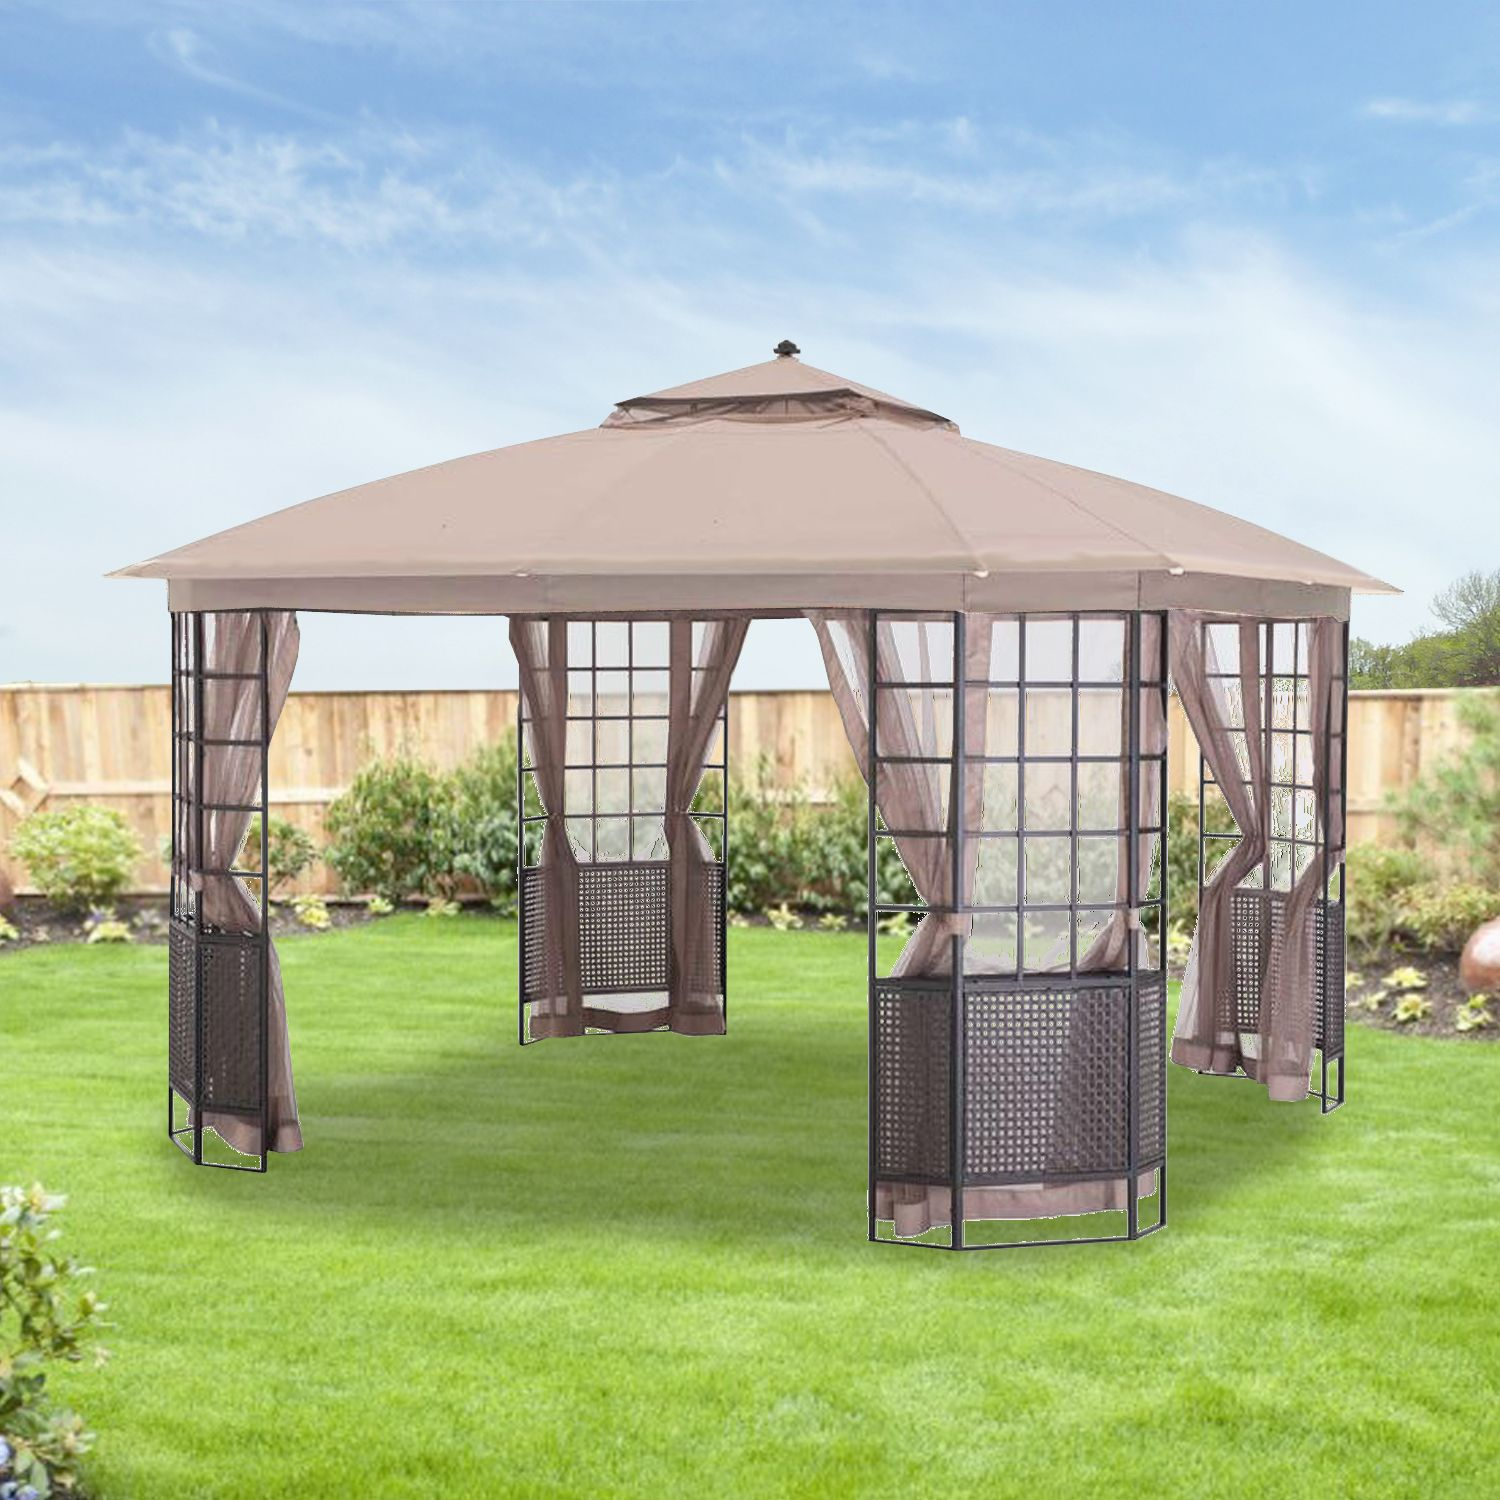 Replacement Canopy for Bay Grid 12x12 Gazebo - Riplock 350  sc 1 st  Pinterest : outdoor canopy gazebo 12x12 - memphite.com